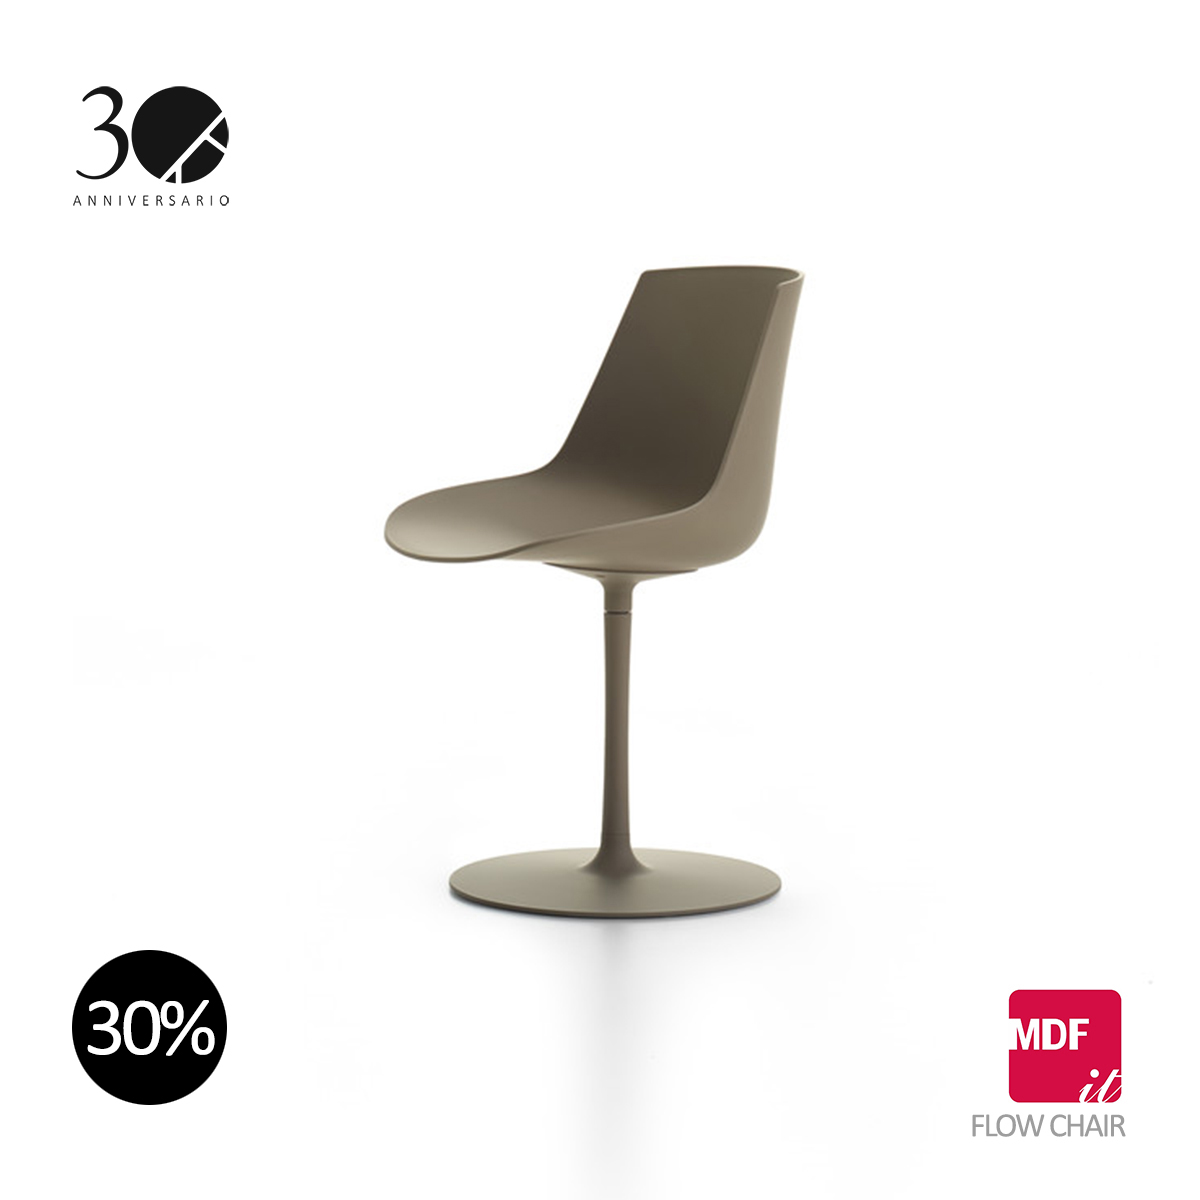 FLOW CHAIR